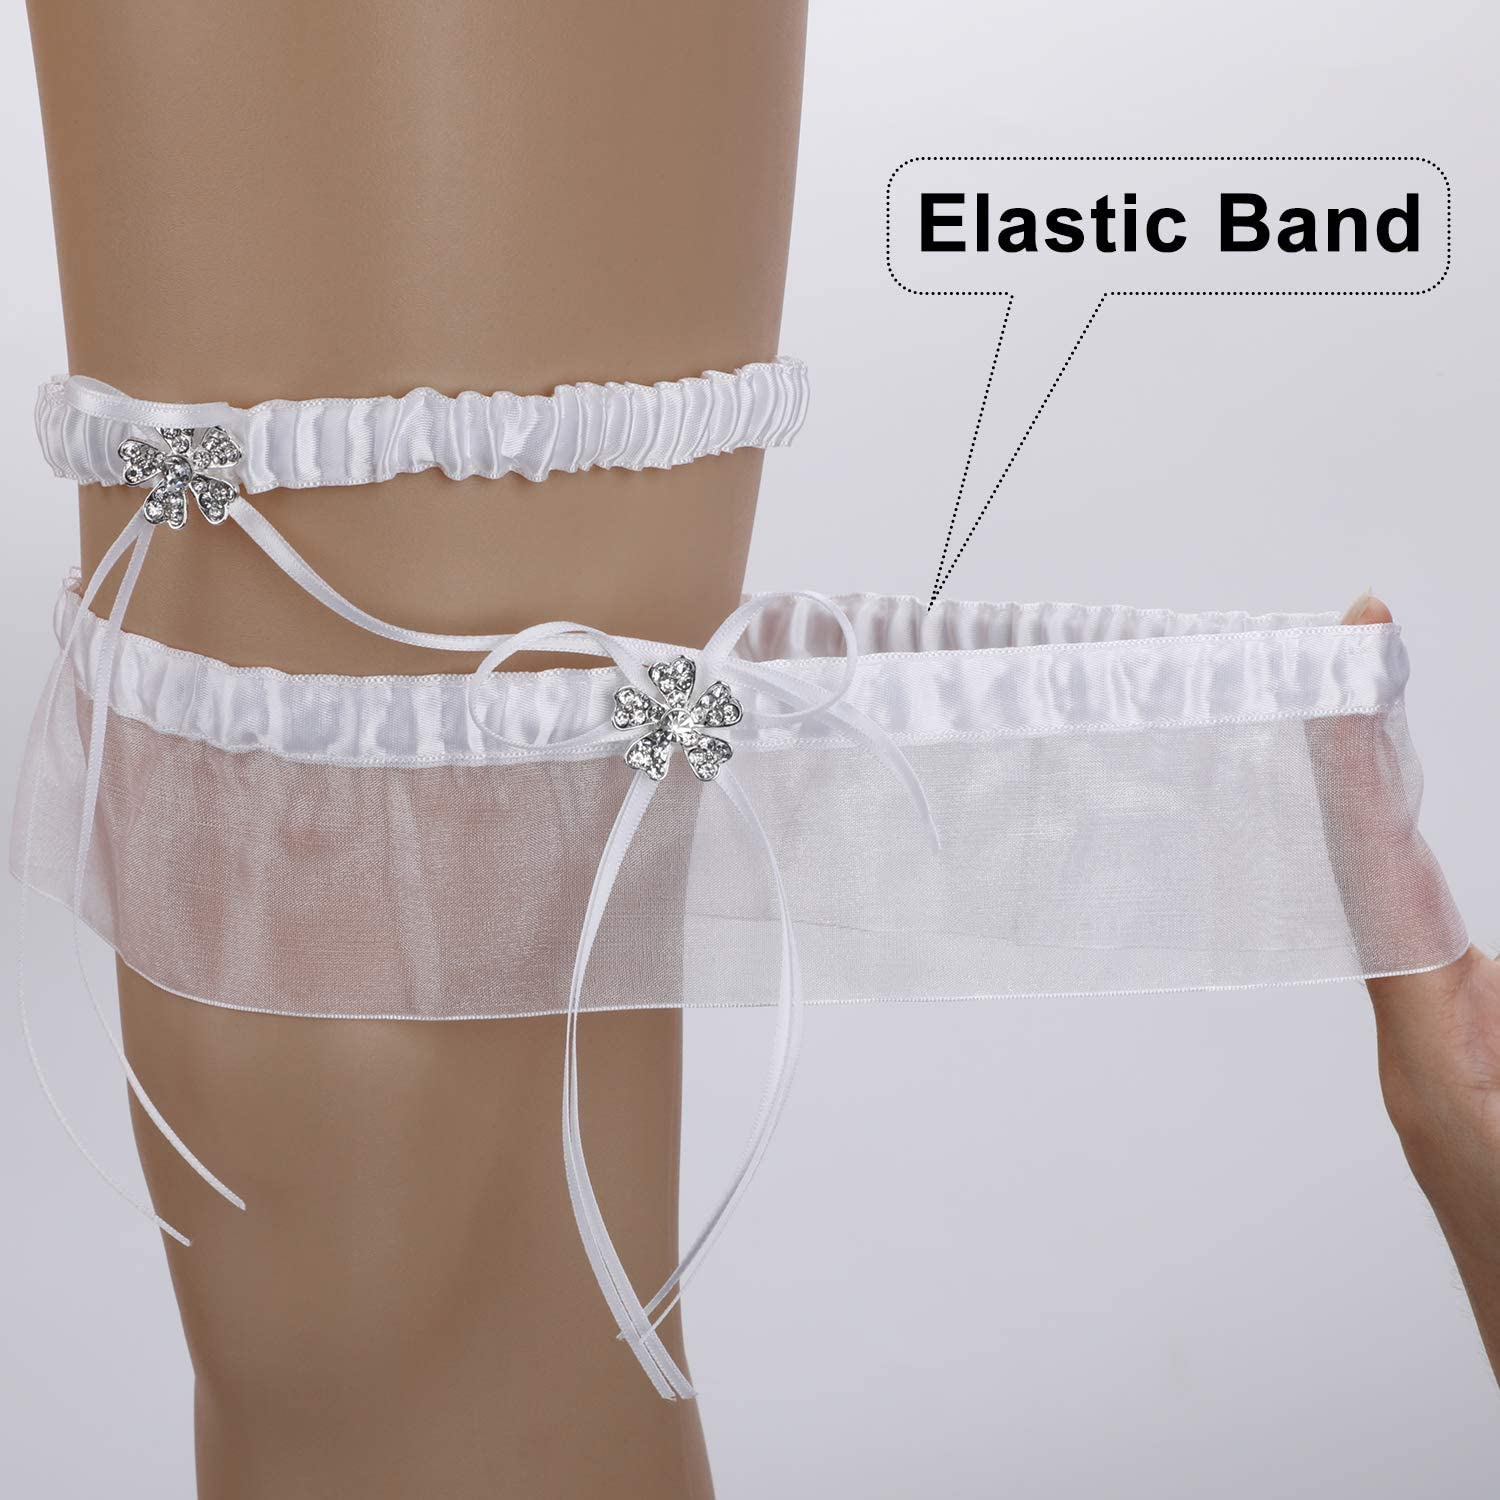 Wedding Dresses Accessories Elasticated Bridal Wedding Garter Wedding Favour Hen Party Night One Size MWOOT White Lace Bride Garter for Bride to Be Bride to be Wedding Day Gift